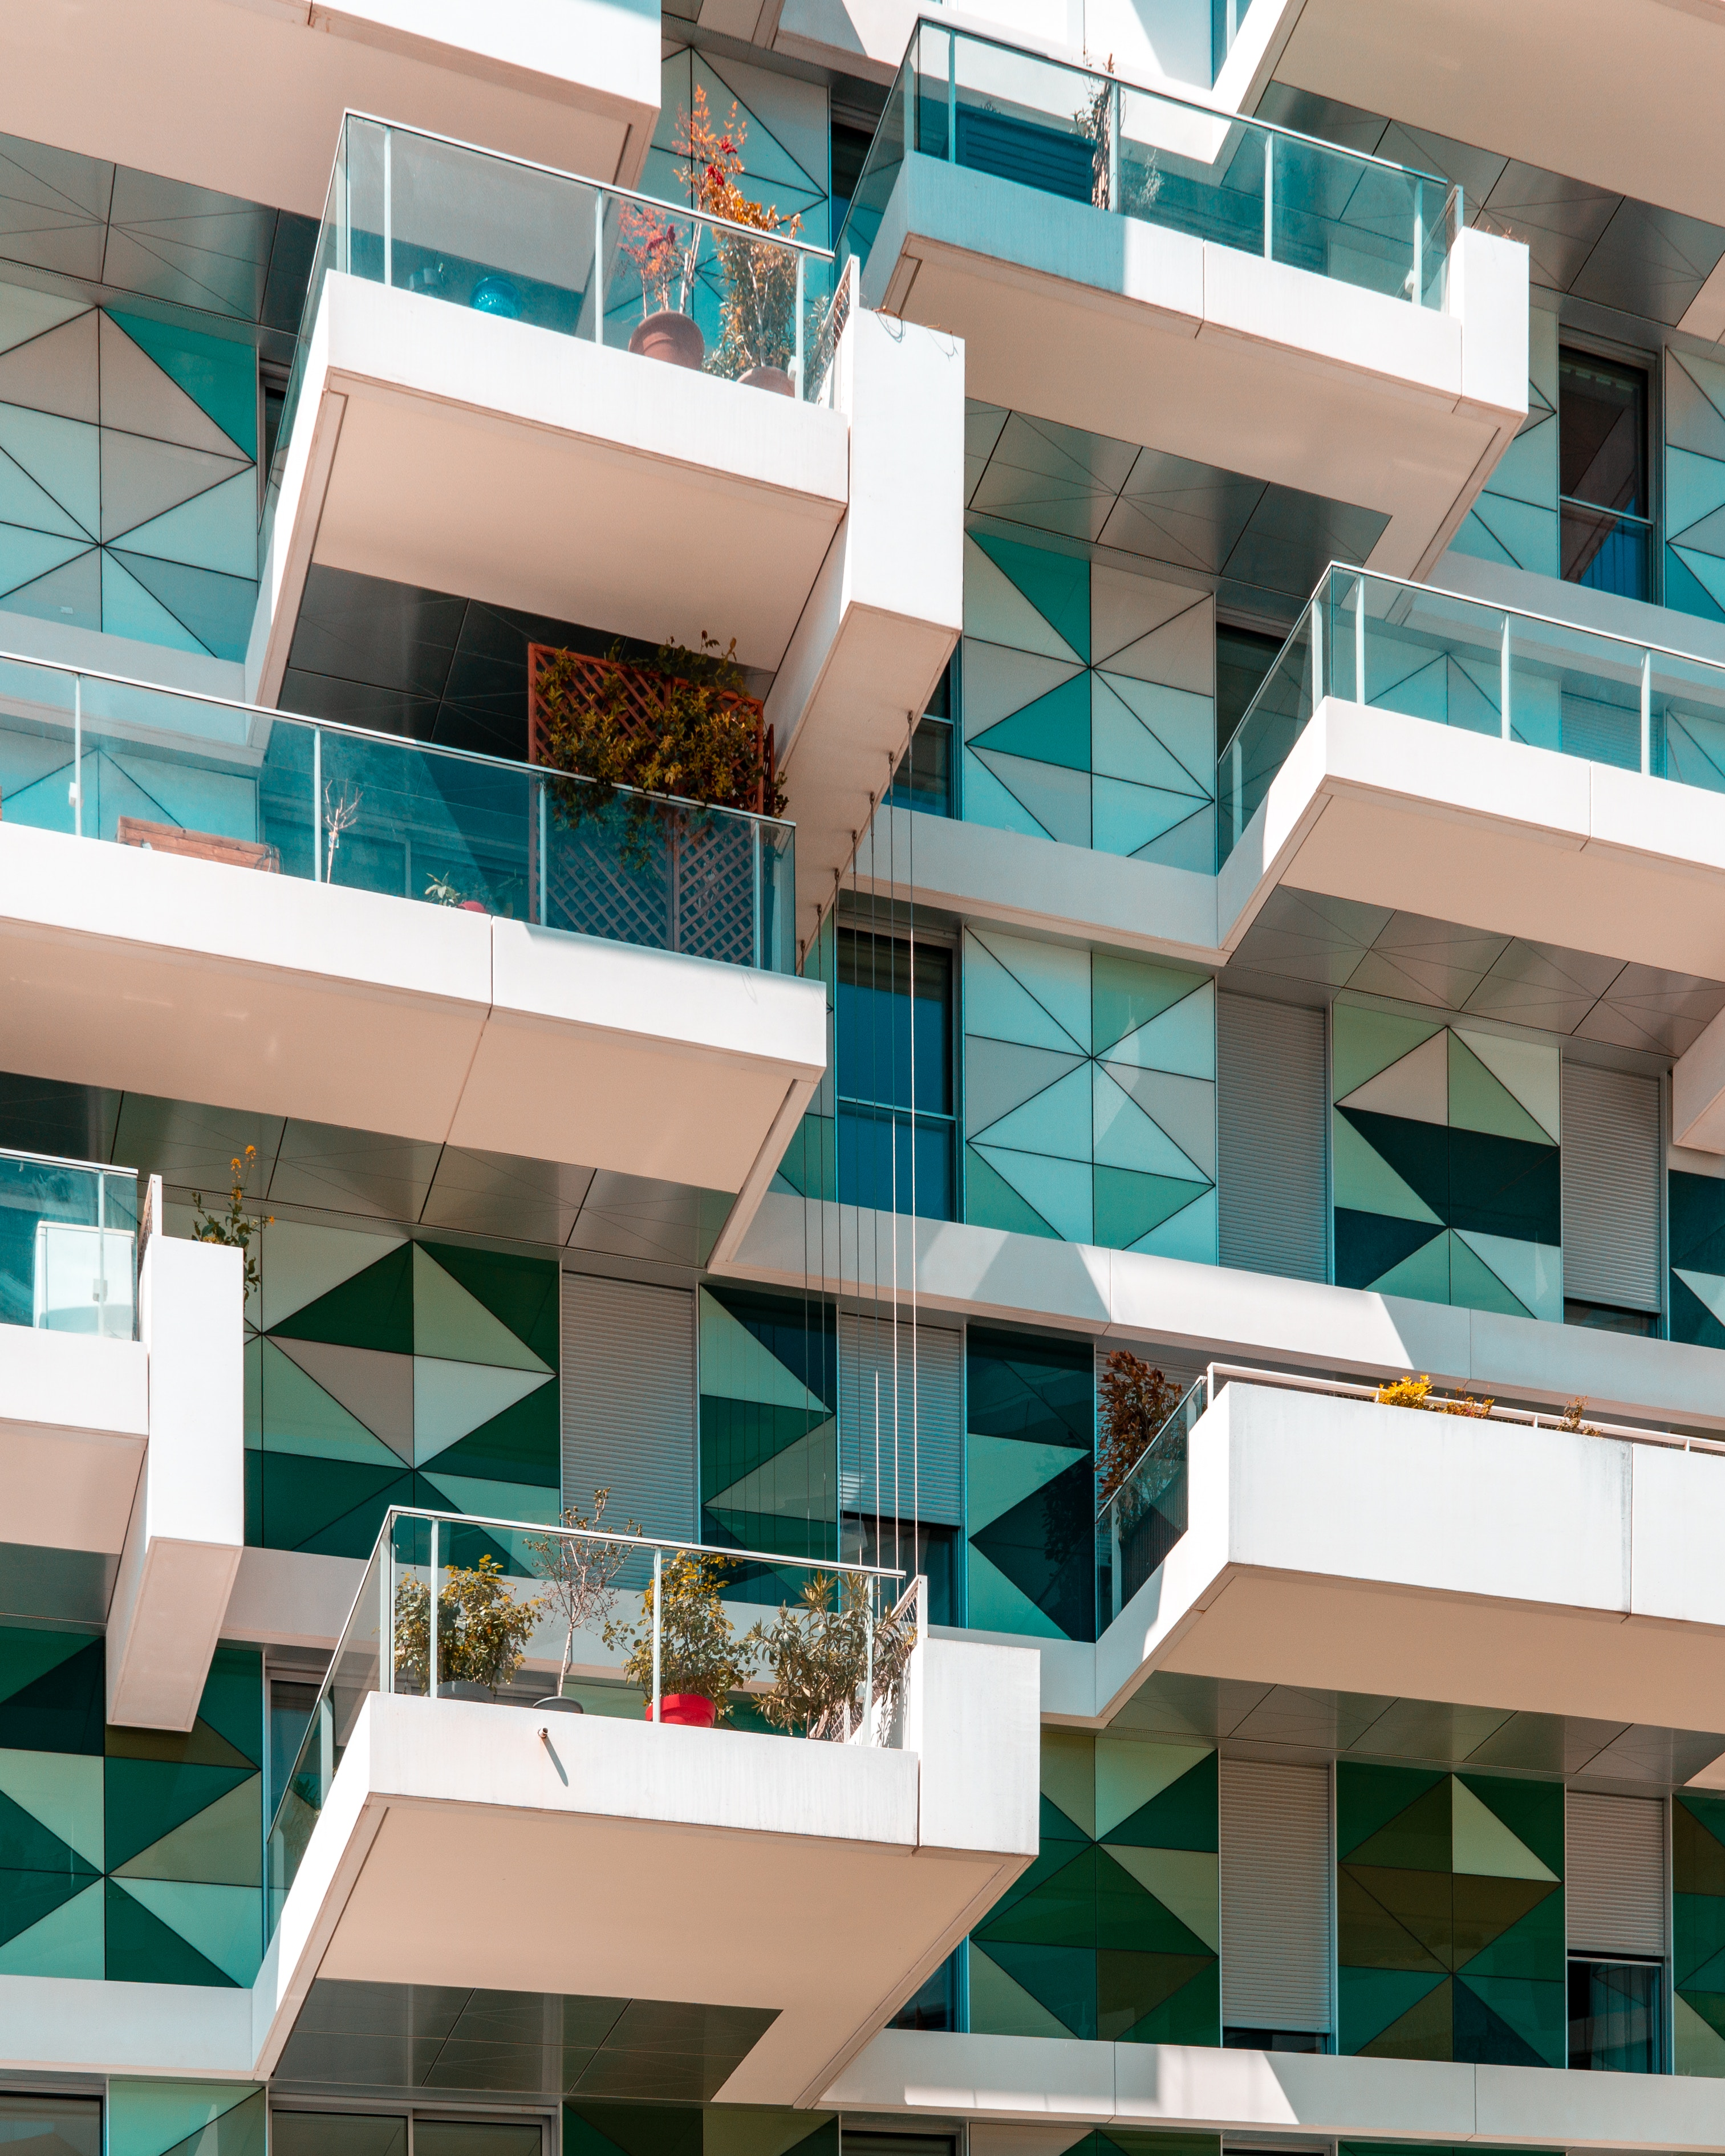 Are Balconies In The City Worth The Trouble? Experts Weigh In